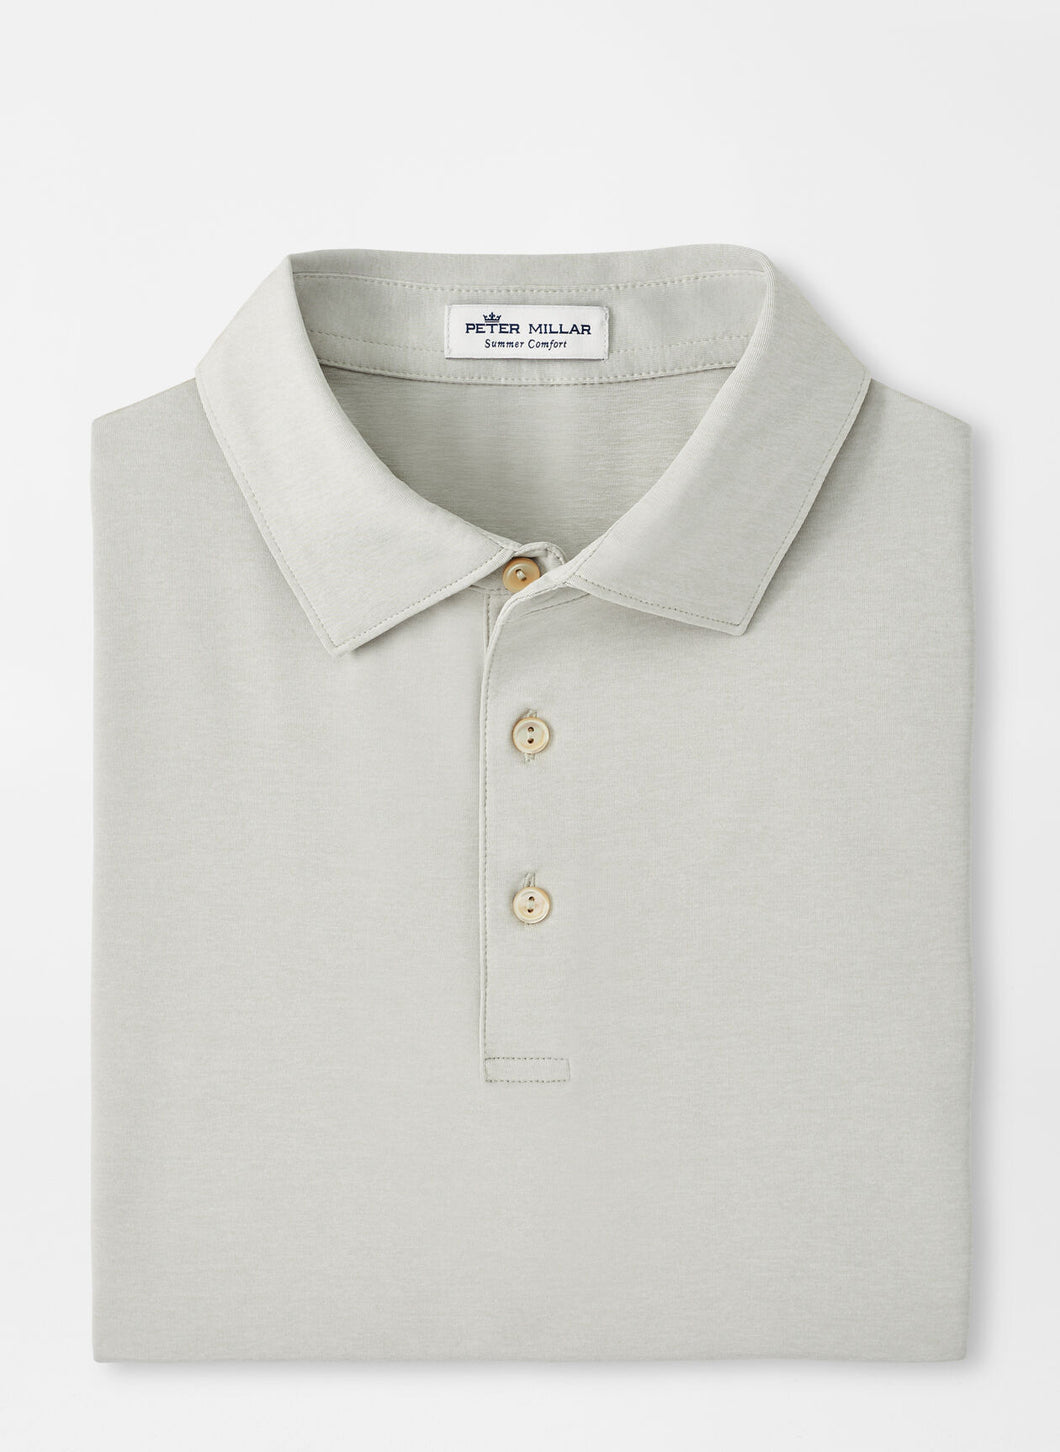 Peter Millar Solid Performance Polo in British Grey